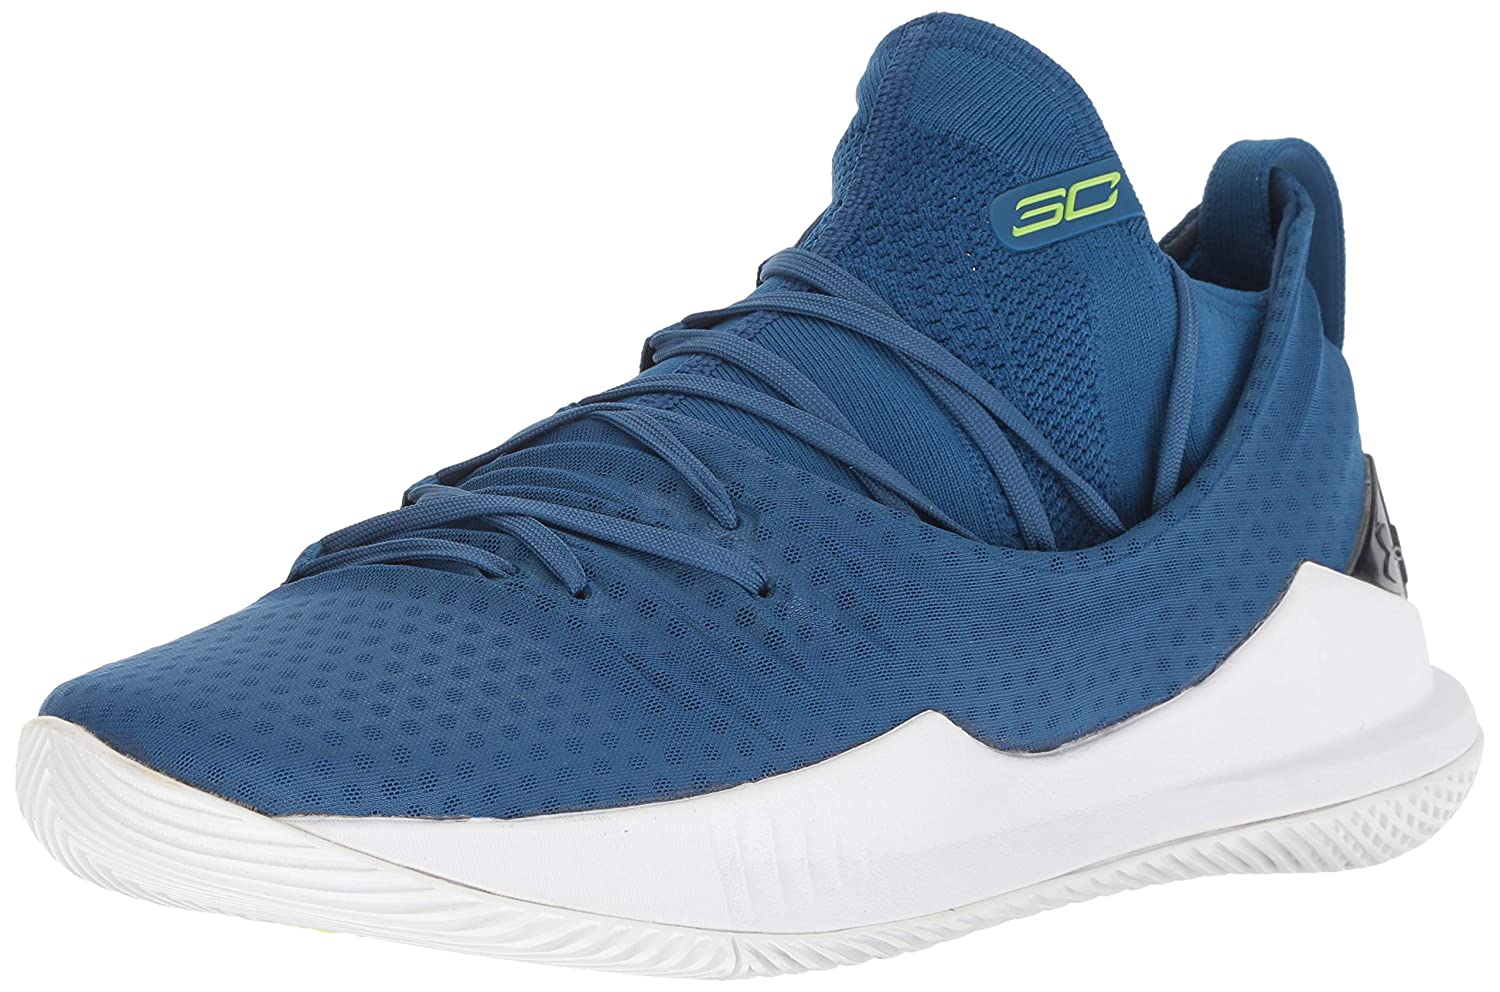 reputable site 1f0c9 0d380 Under Armour Men's Curry 5 Basketball Shoe